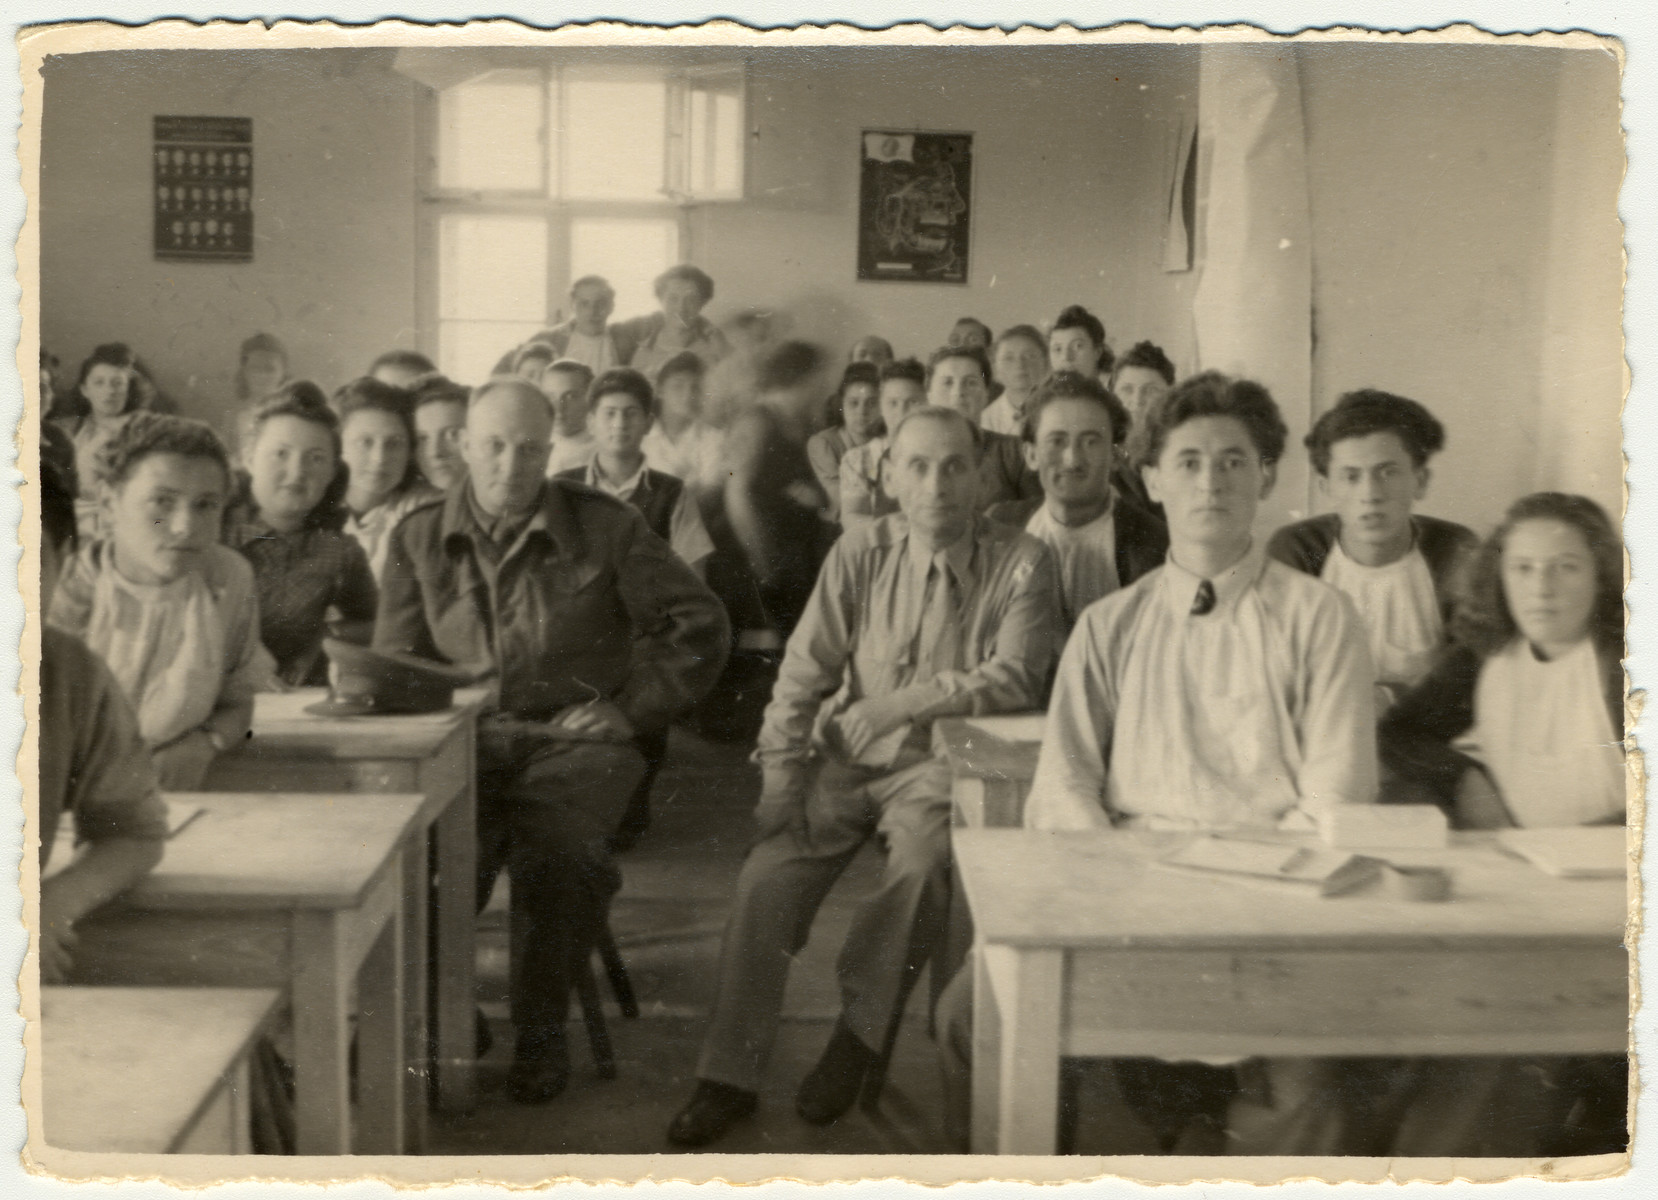 Students at the ORT dental technician school sit at their desks in the Bergen-Belsen displaced persons camp.  Erno Pollak is pictured in the second row on the far right.